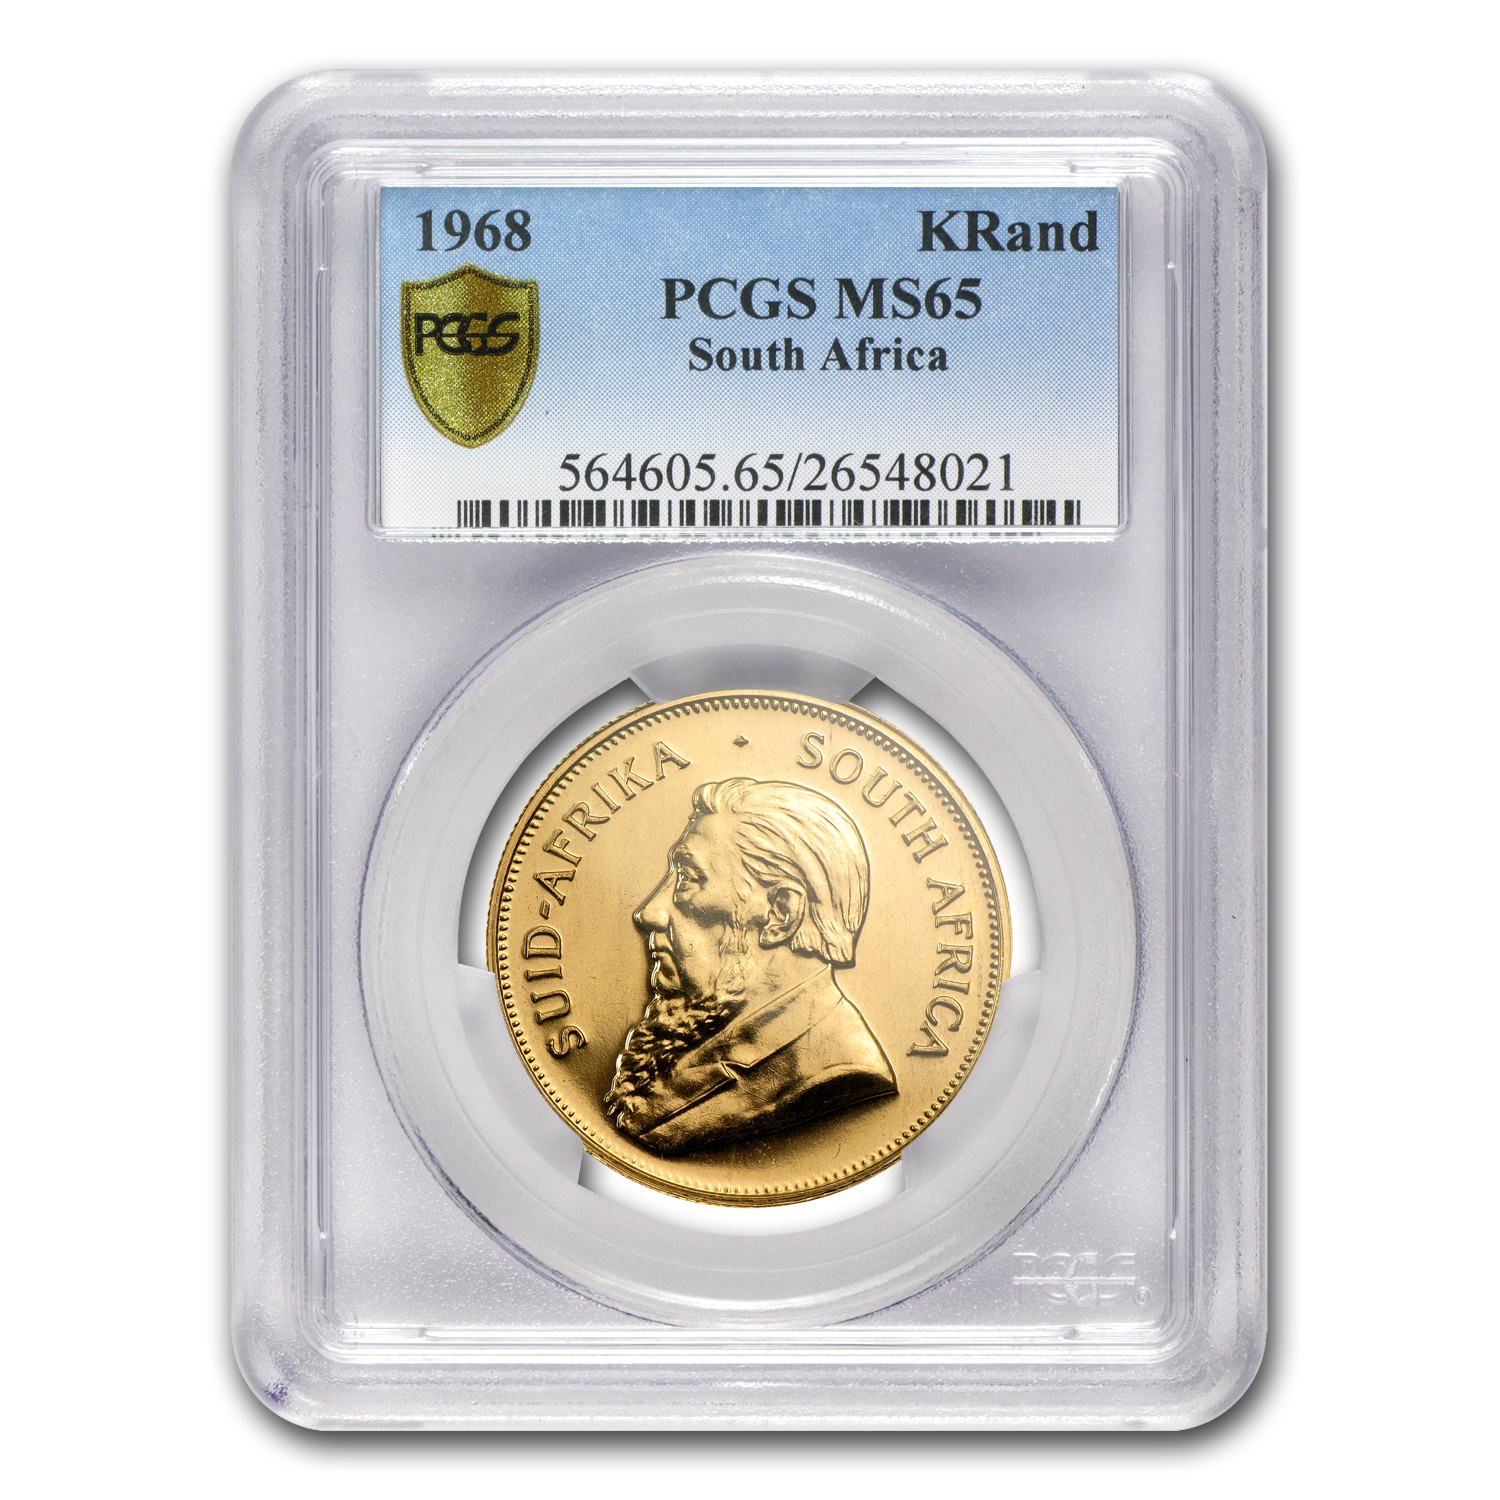 1968 1 oz Gold South African Krugerrand PCGS MS65